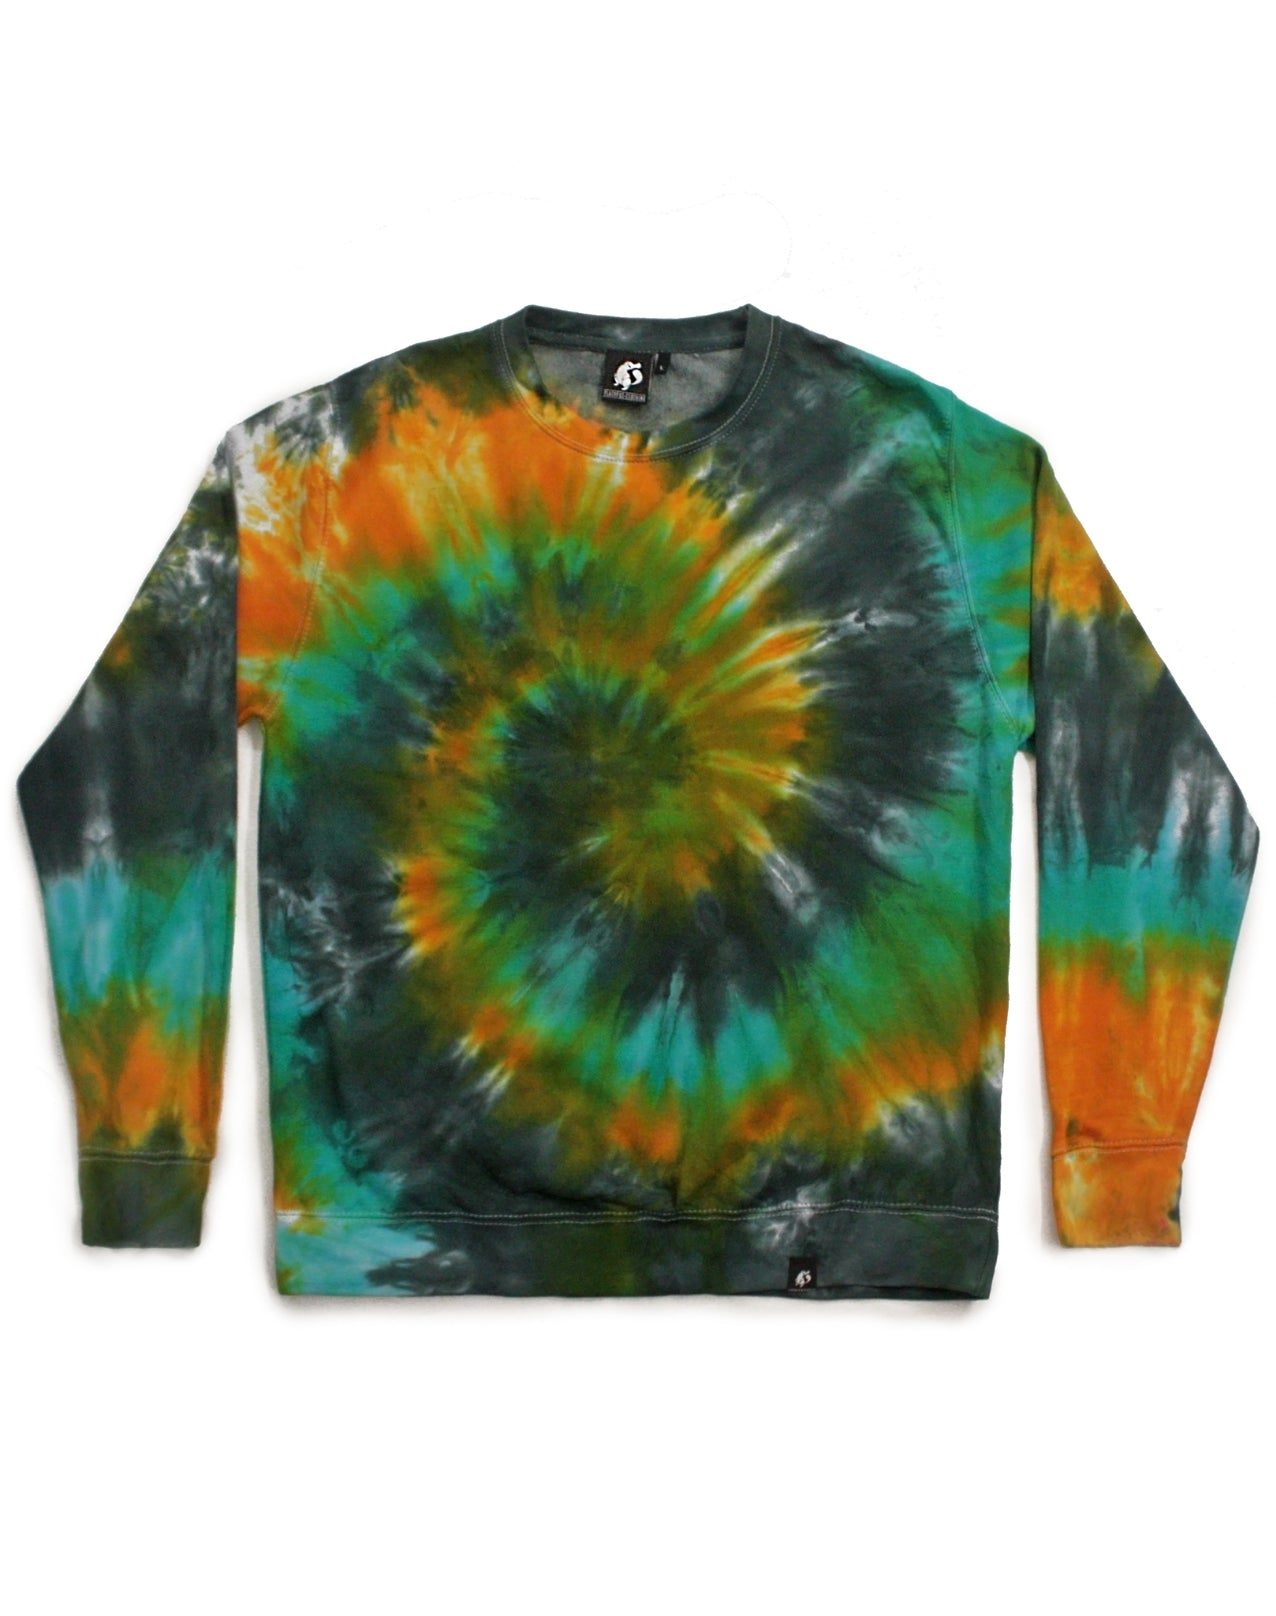 Tie Dye Yellow, Charcoal and Blue Spiral Sweatshirt - Size L